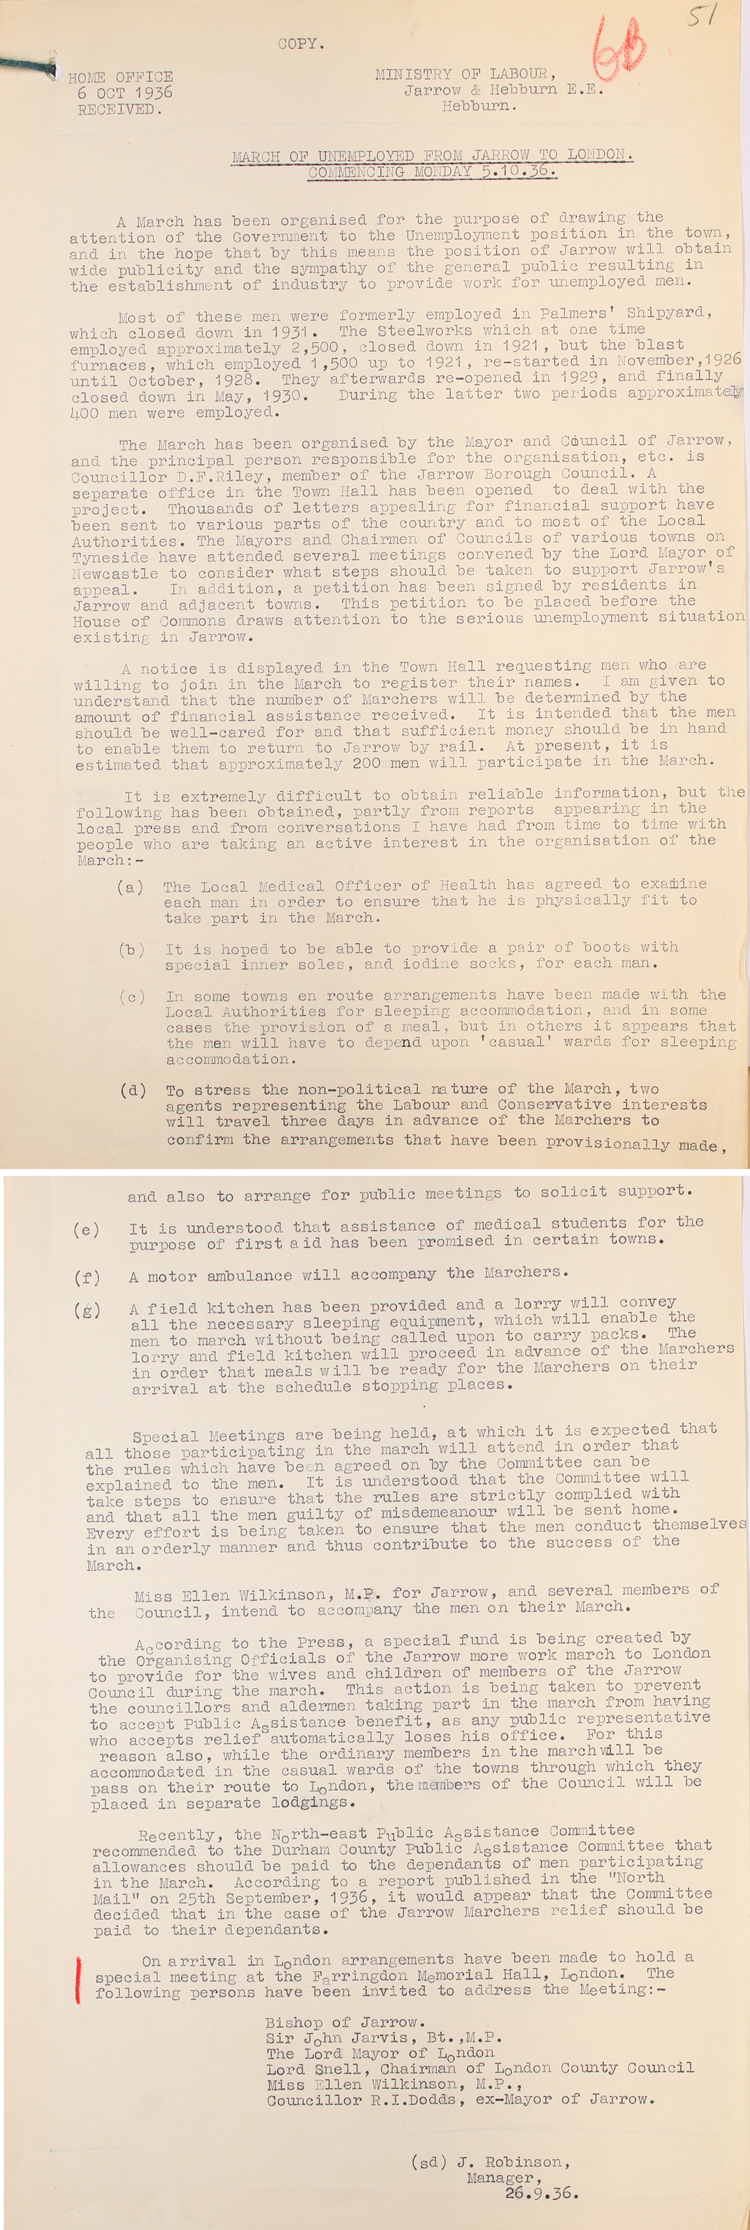 Details of the Jarrow March sent from the Ministry of Labour to the Home Office, 26th September 1936 (MEPO 2/3097)